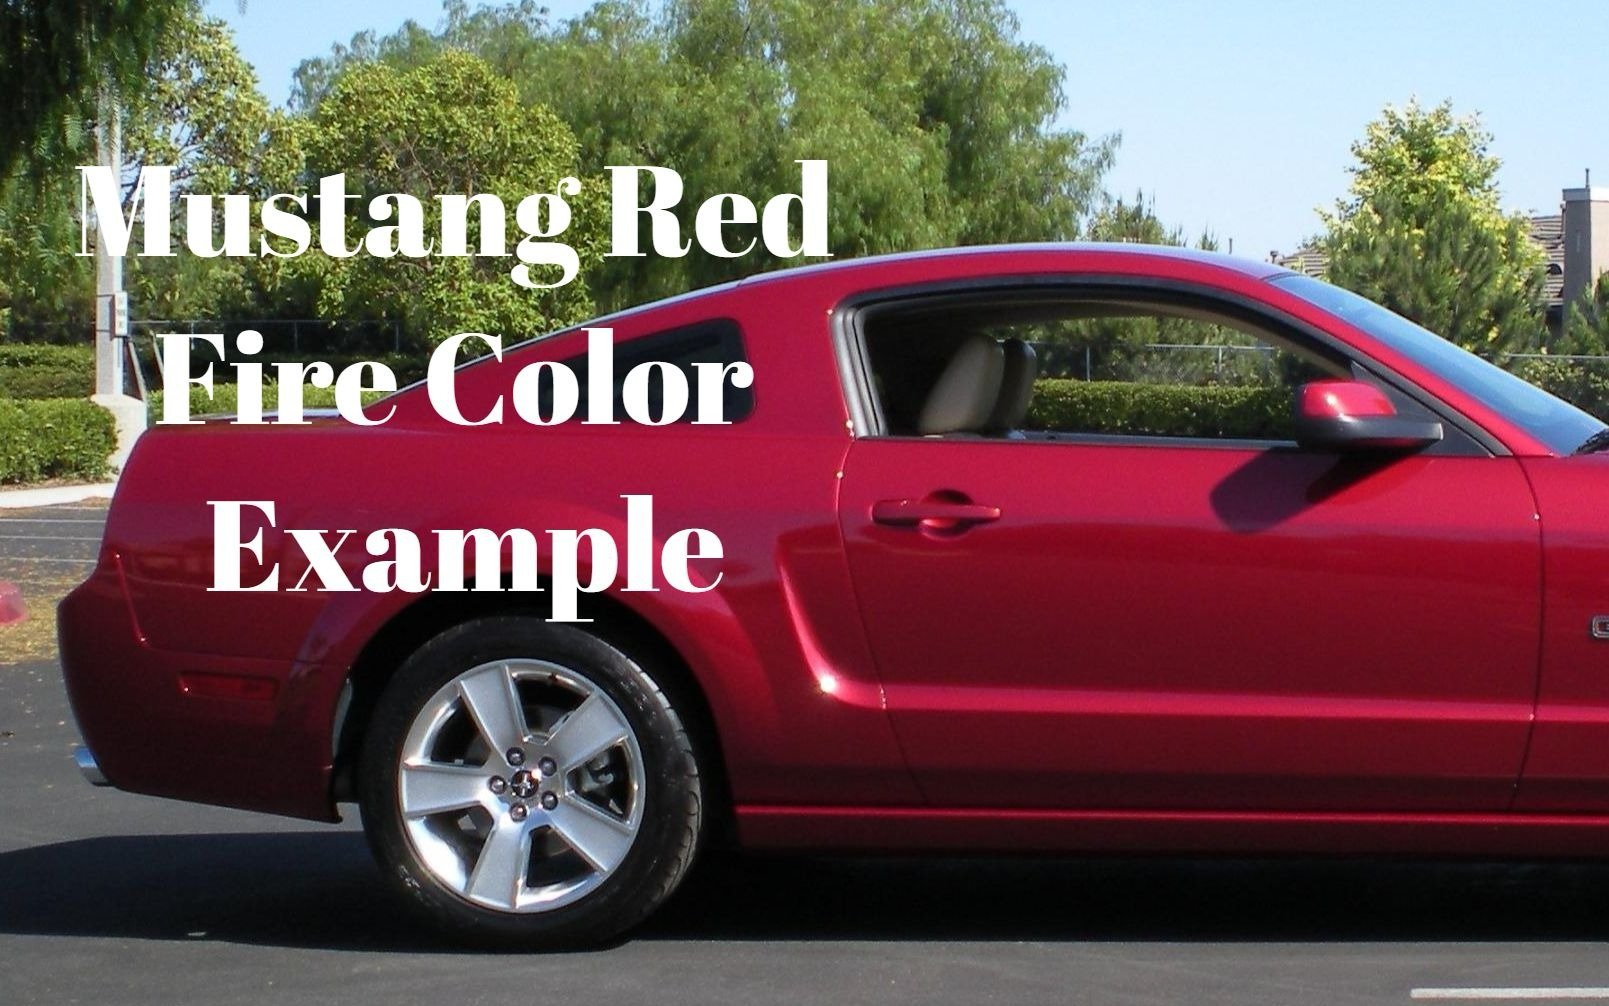 G2 High Heat Temperature Brake Caliper Paint Kit system Set Custom Mustang Color Red Fire Made in the USA